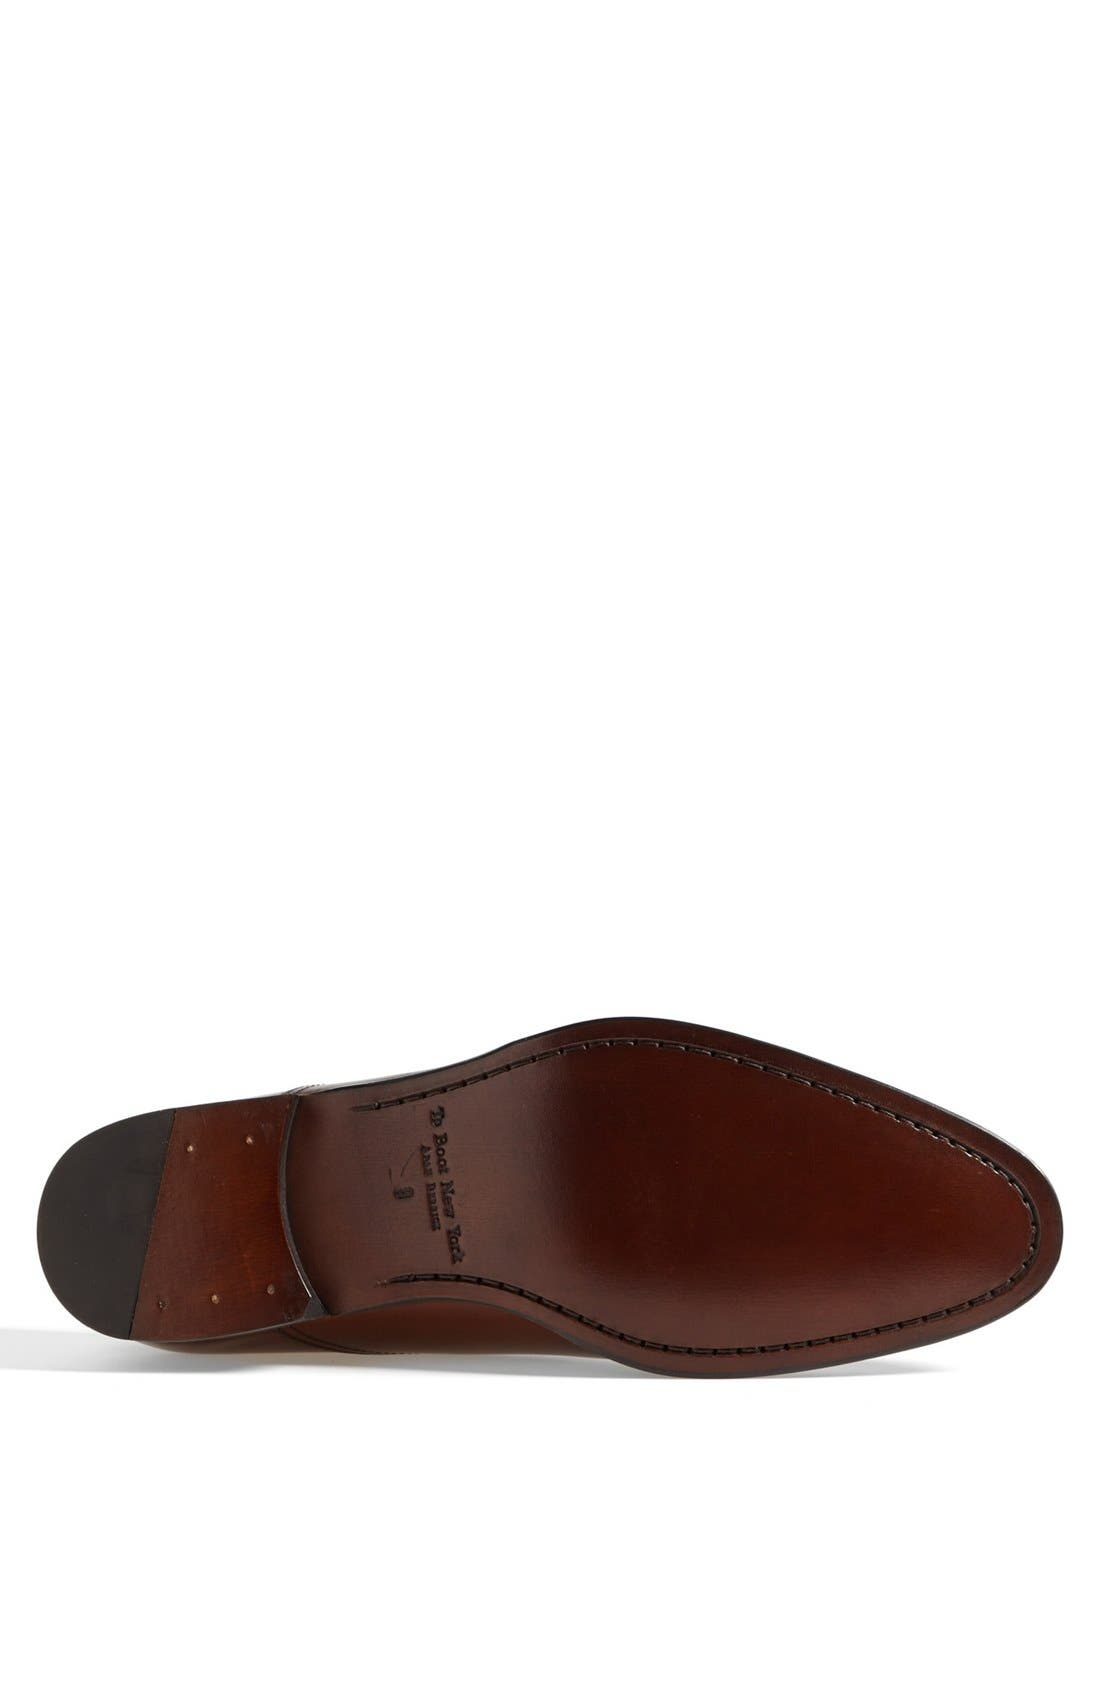 Alternate Image 4  - To Boot New York Brandon Cap Toe Oxford (Nordstrom Exclusive) (Men)